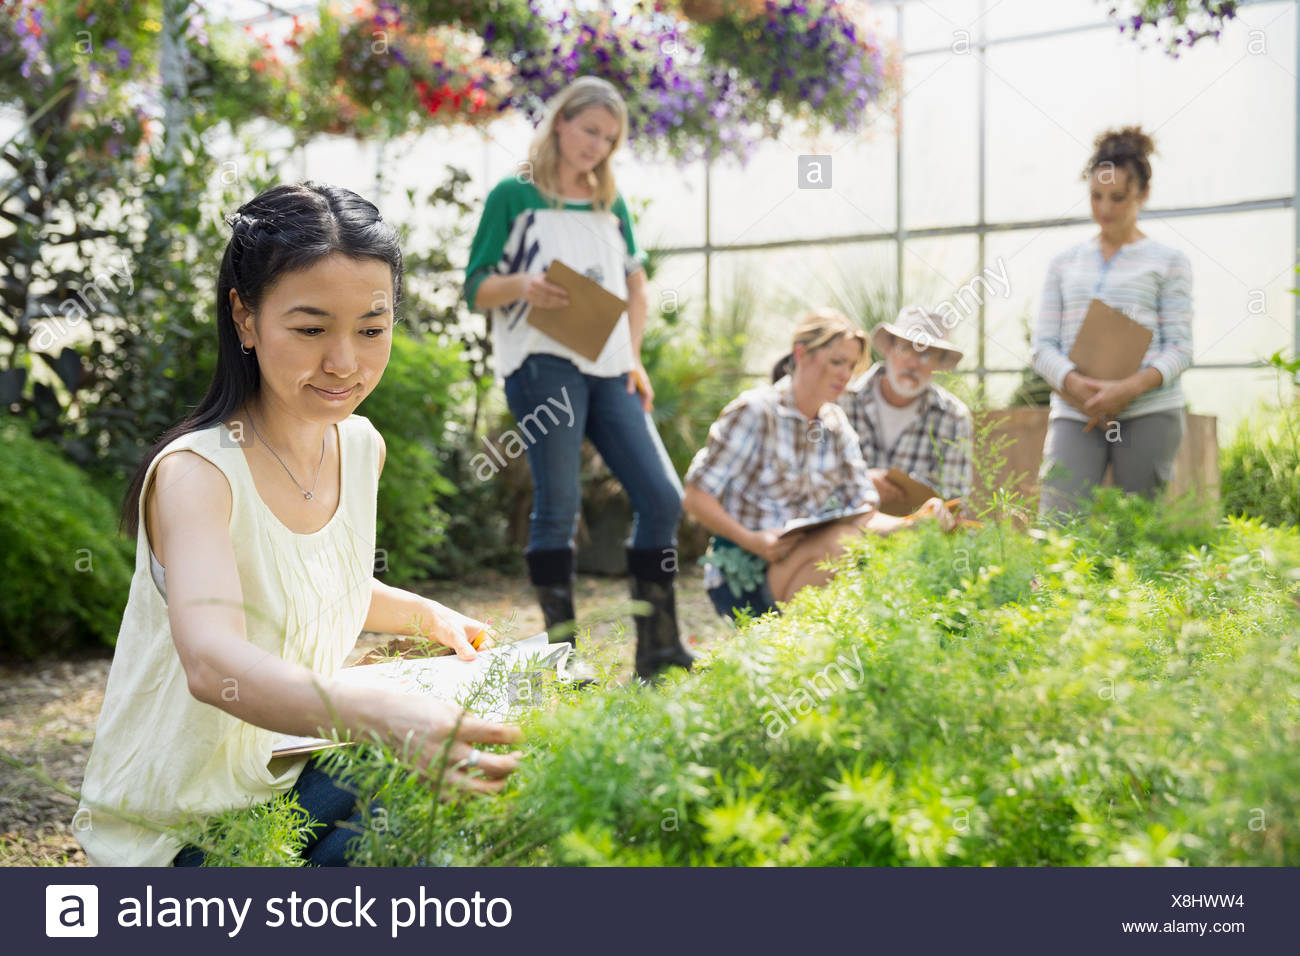 Workers examining plants in greenhouse - Stock Image